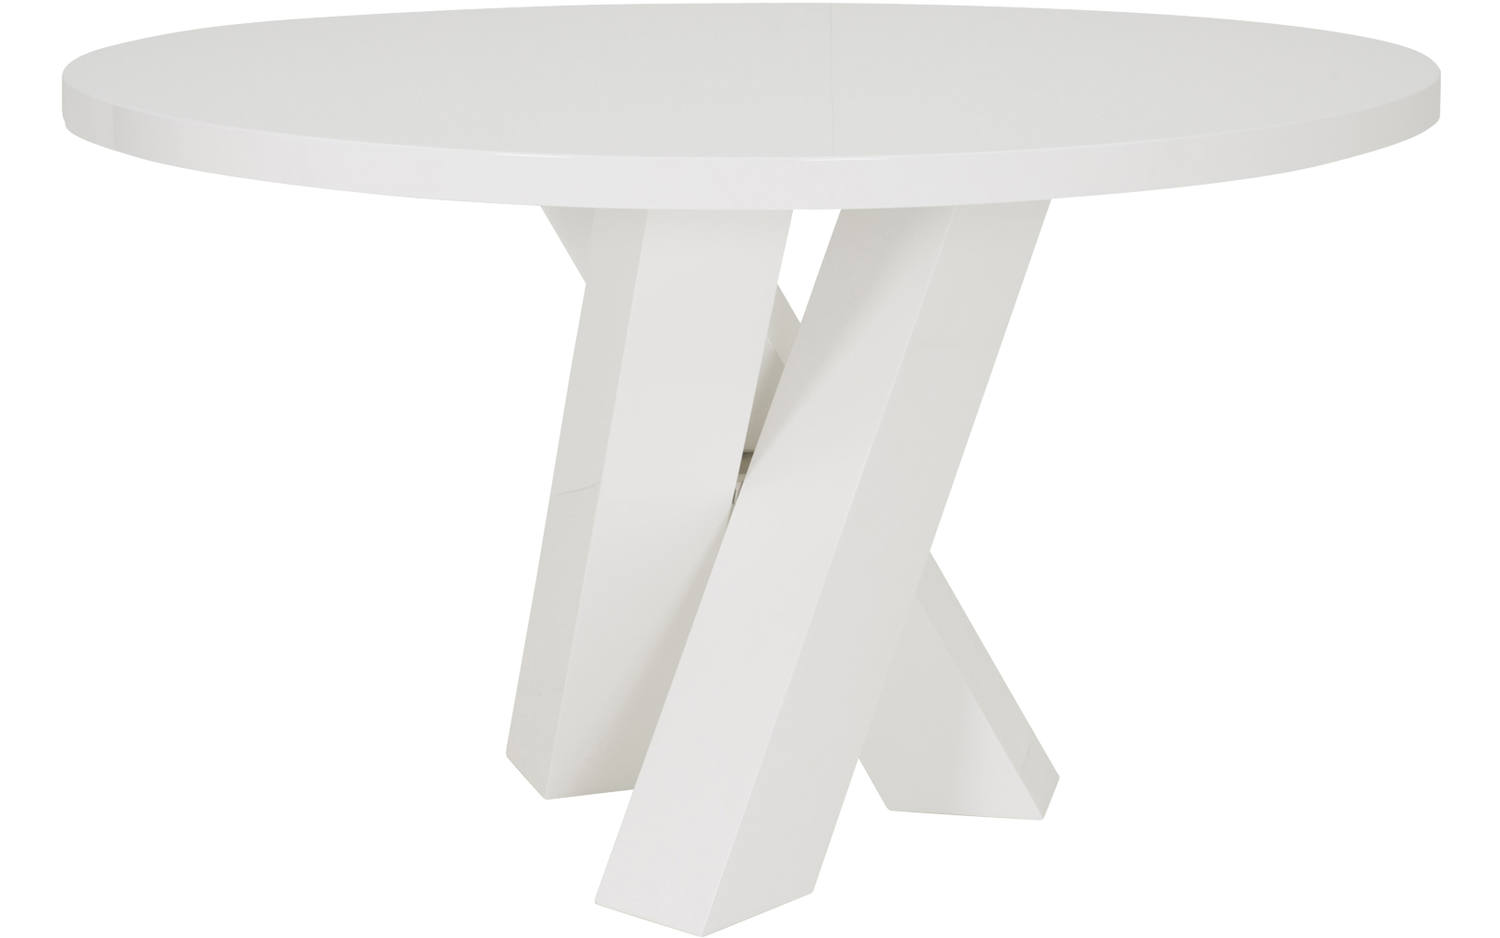 Ronde Eettafel Wit Eettafel Surround